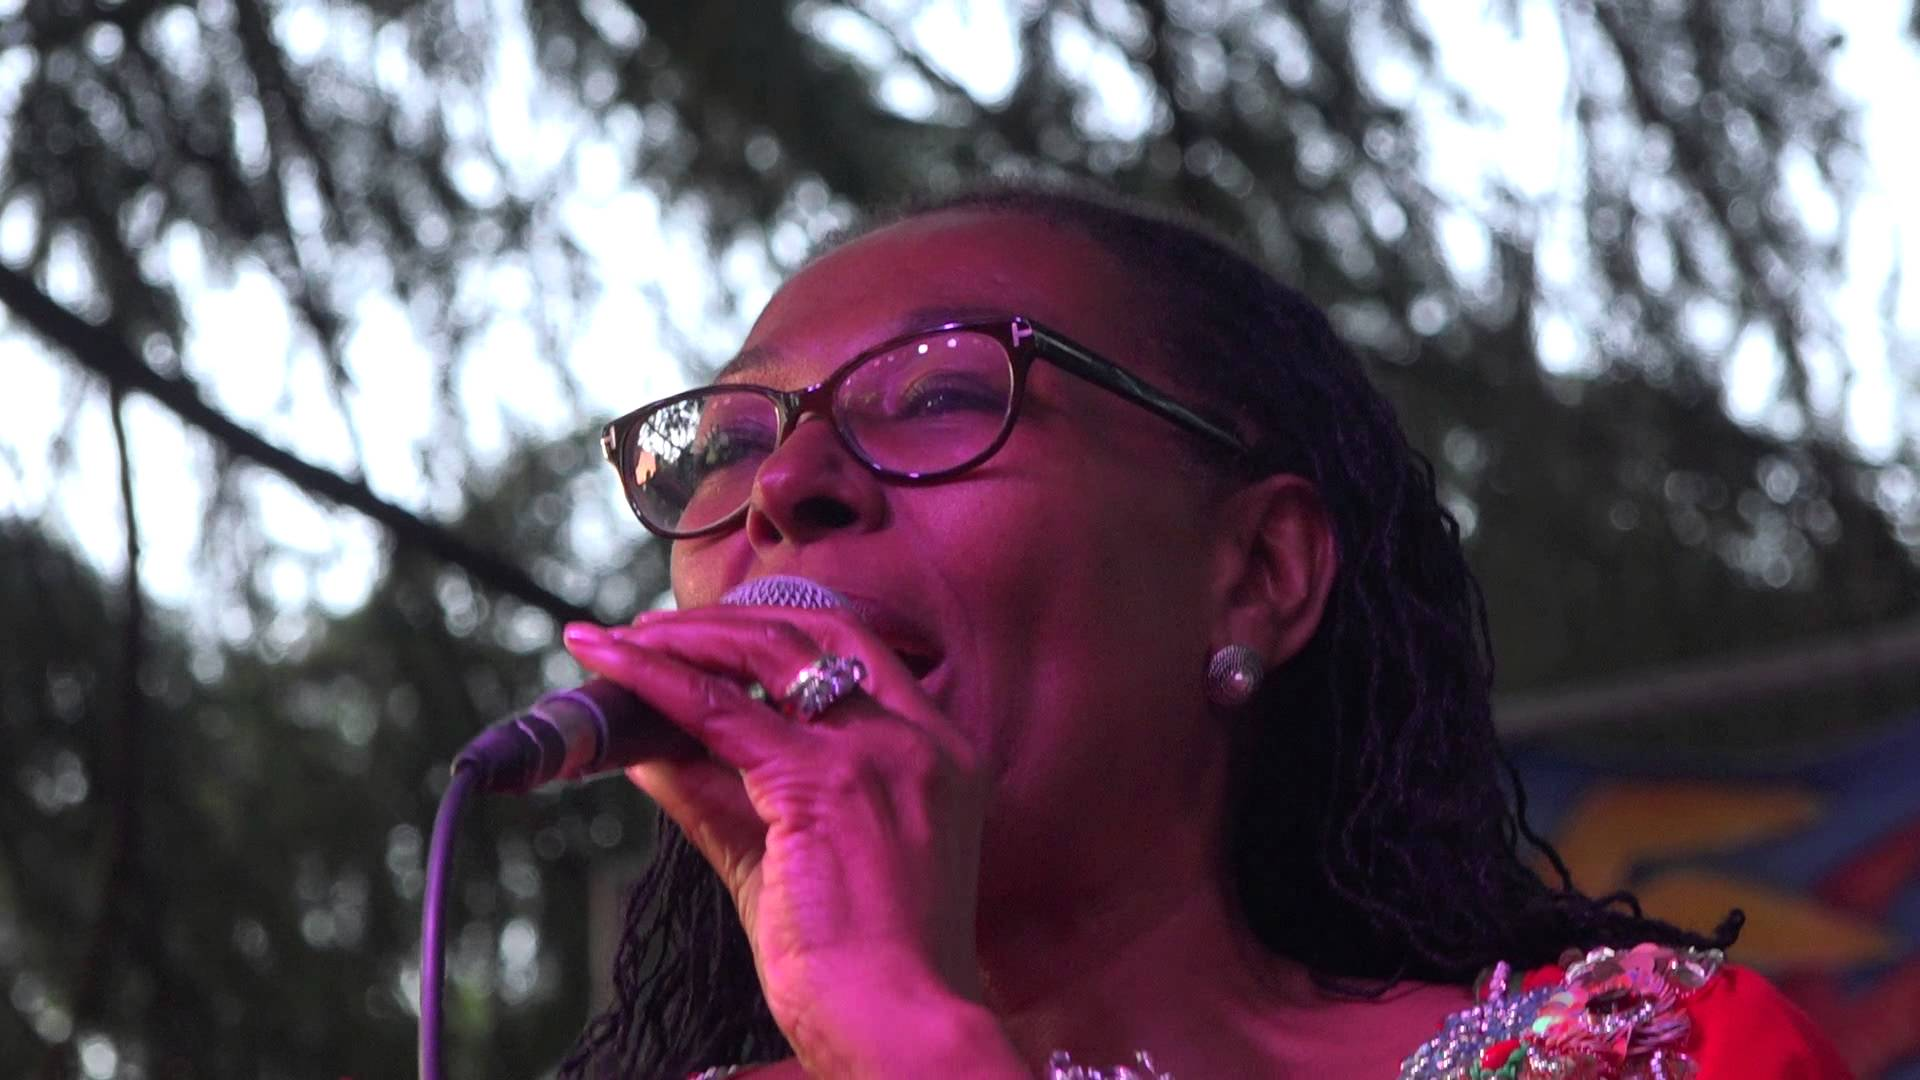 Black Slate - Like This feat. Caroll Thompson @ SNWMF 2014 [6/22/2014]